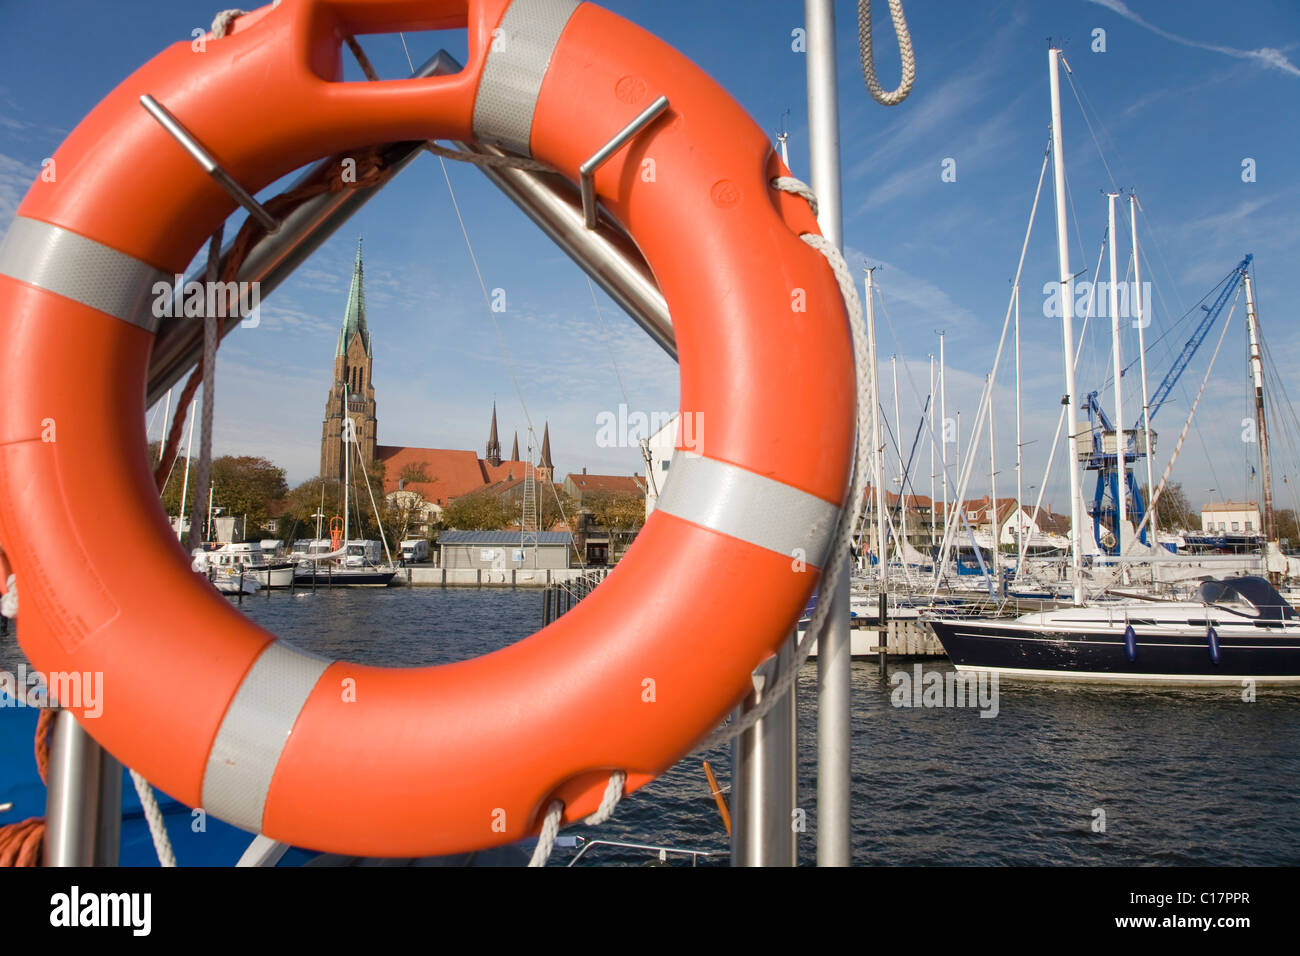 Life ring, sailboat marina with St. Petri Dom, St. Peter's Cathedral in the background, Schleswig an der Schlei, Stock Photo